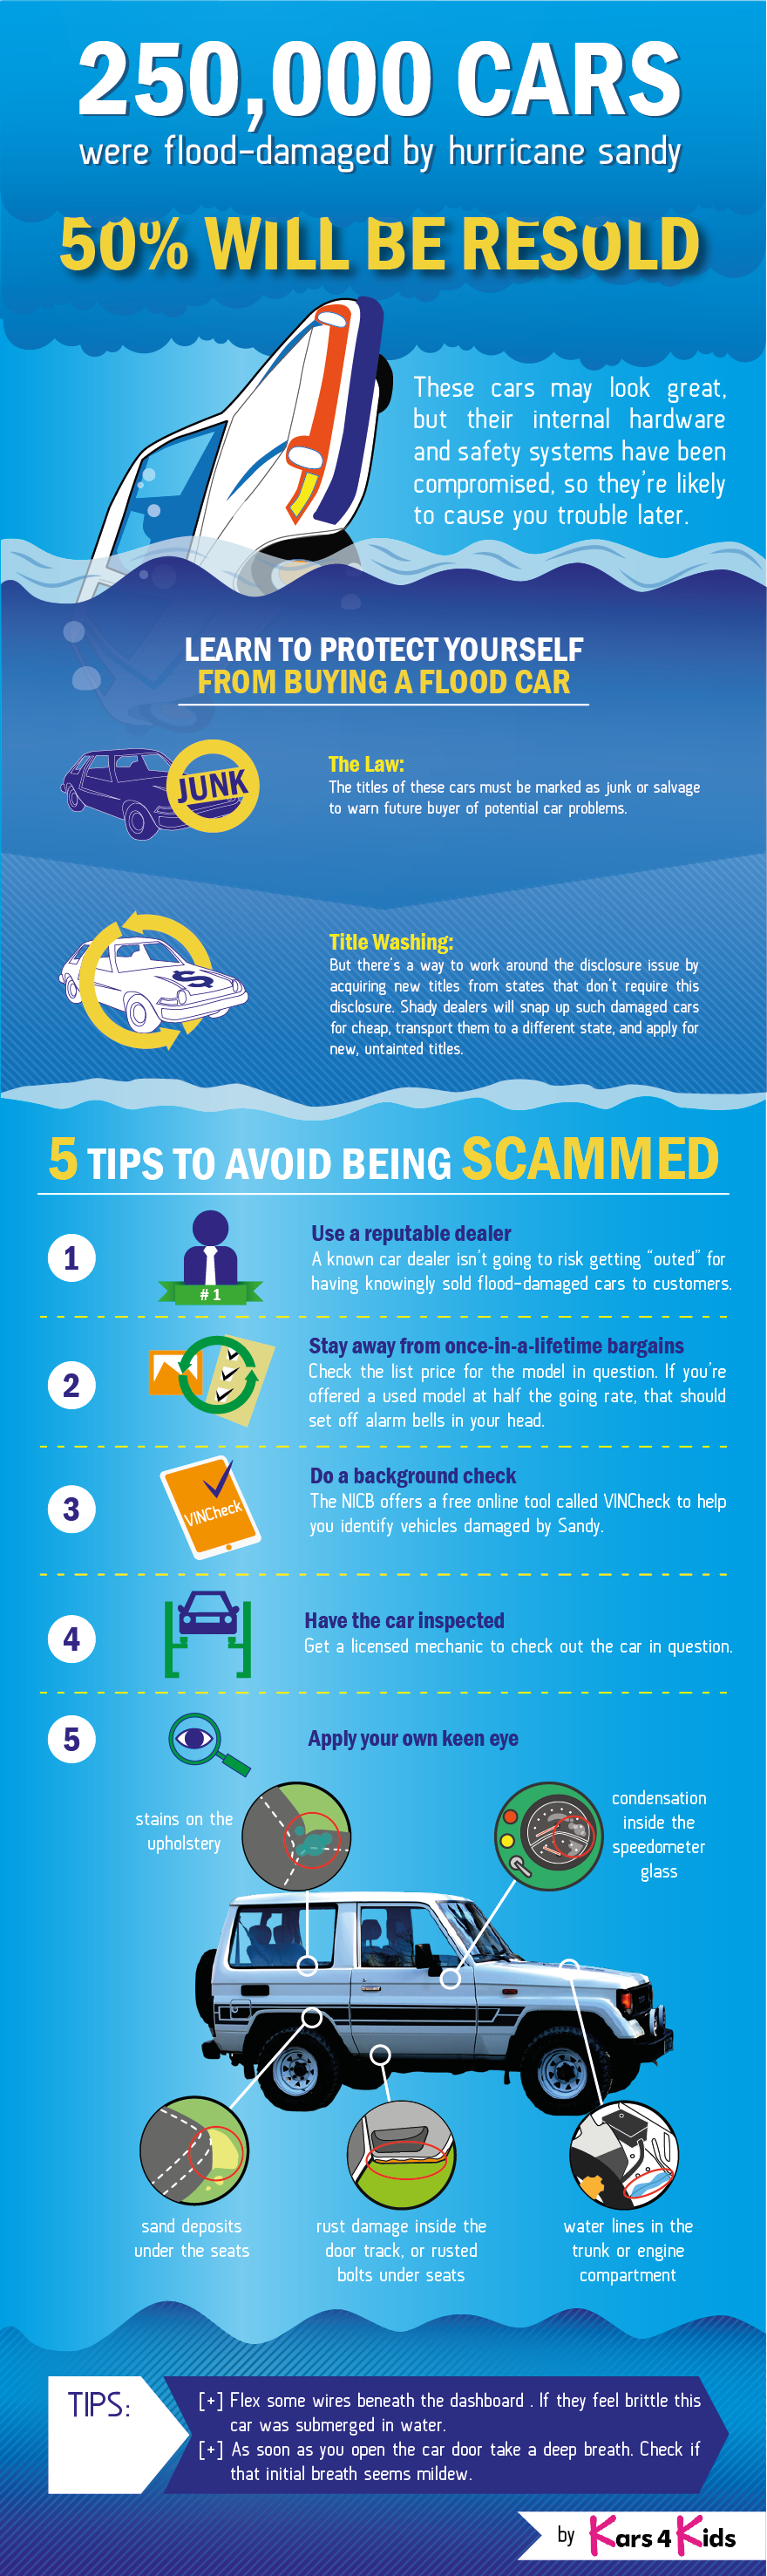 Protect Yourself From Buying A Flood Car [Infographic]